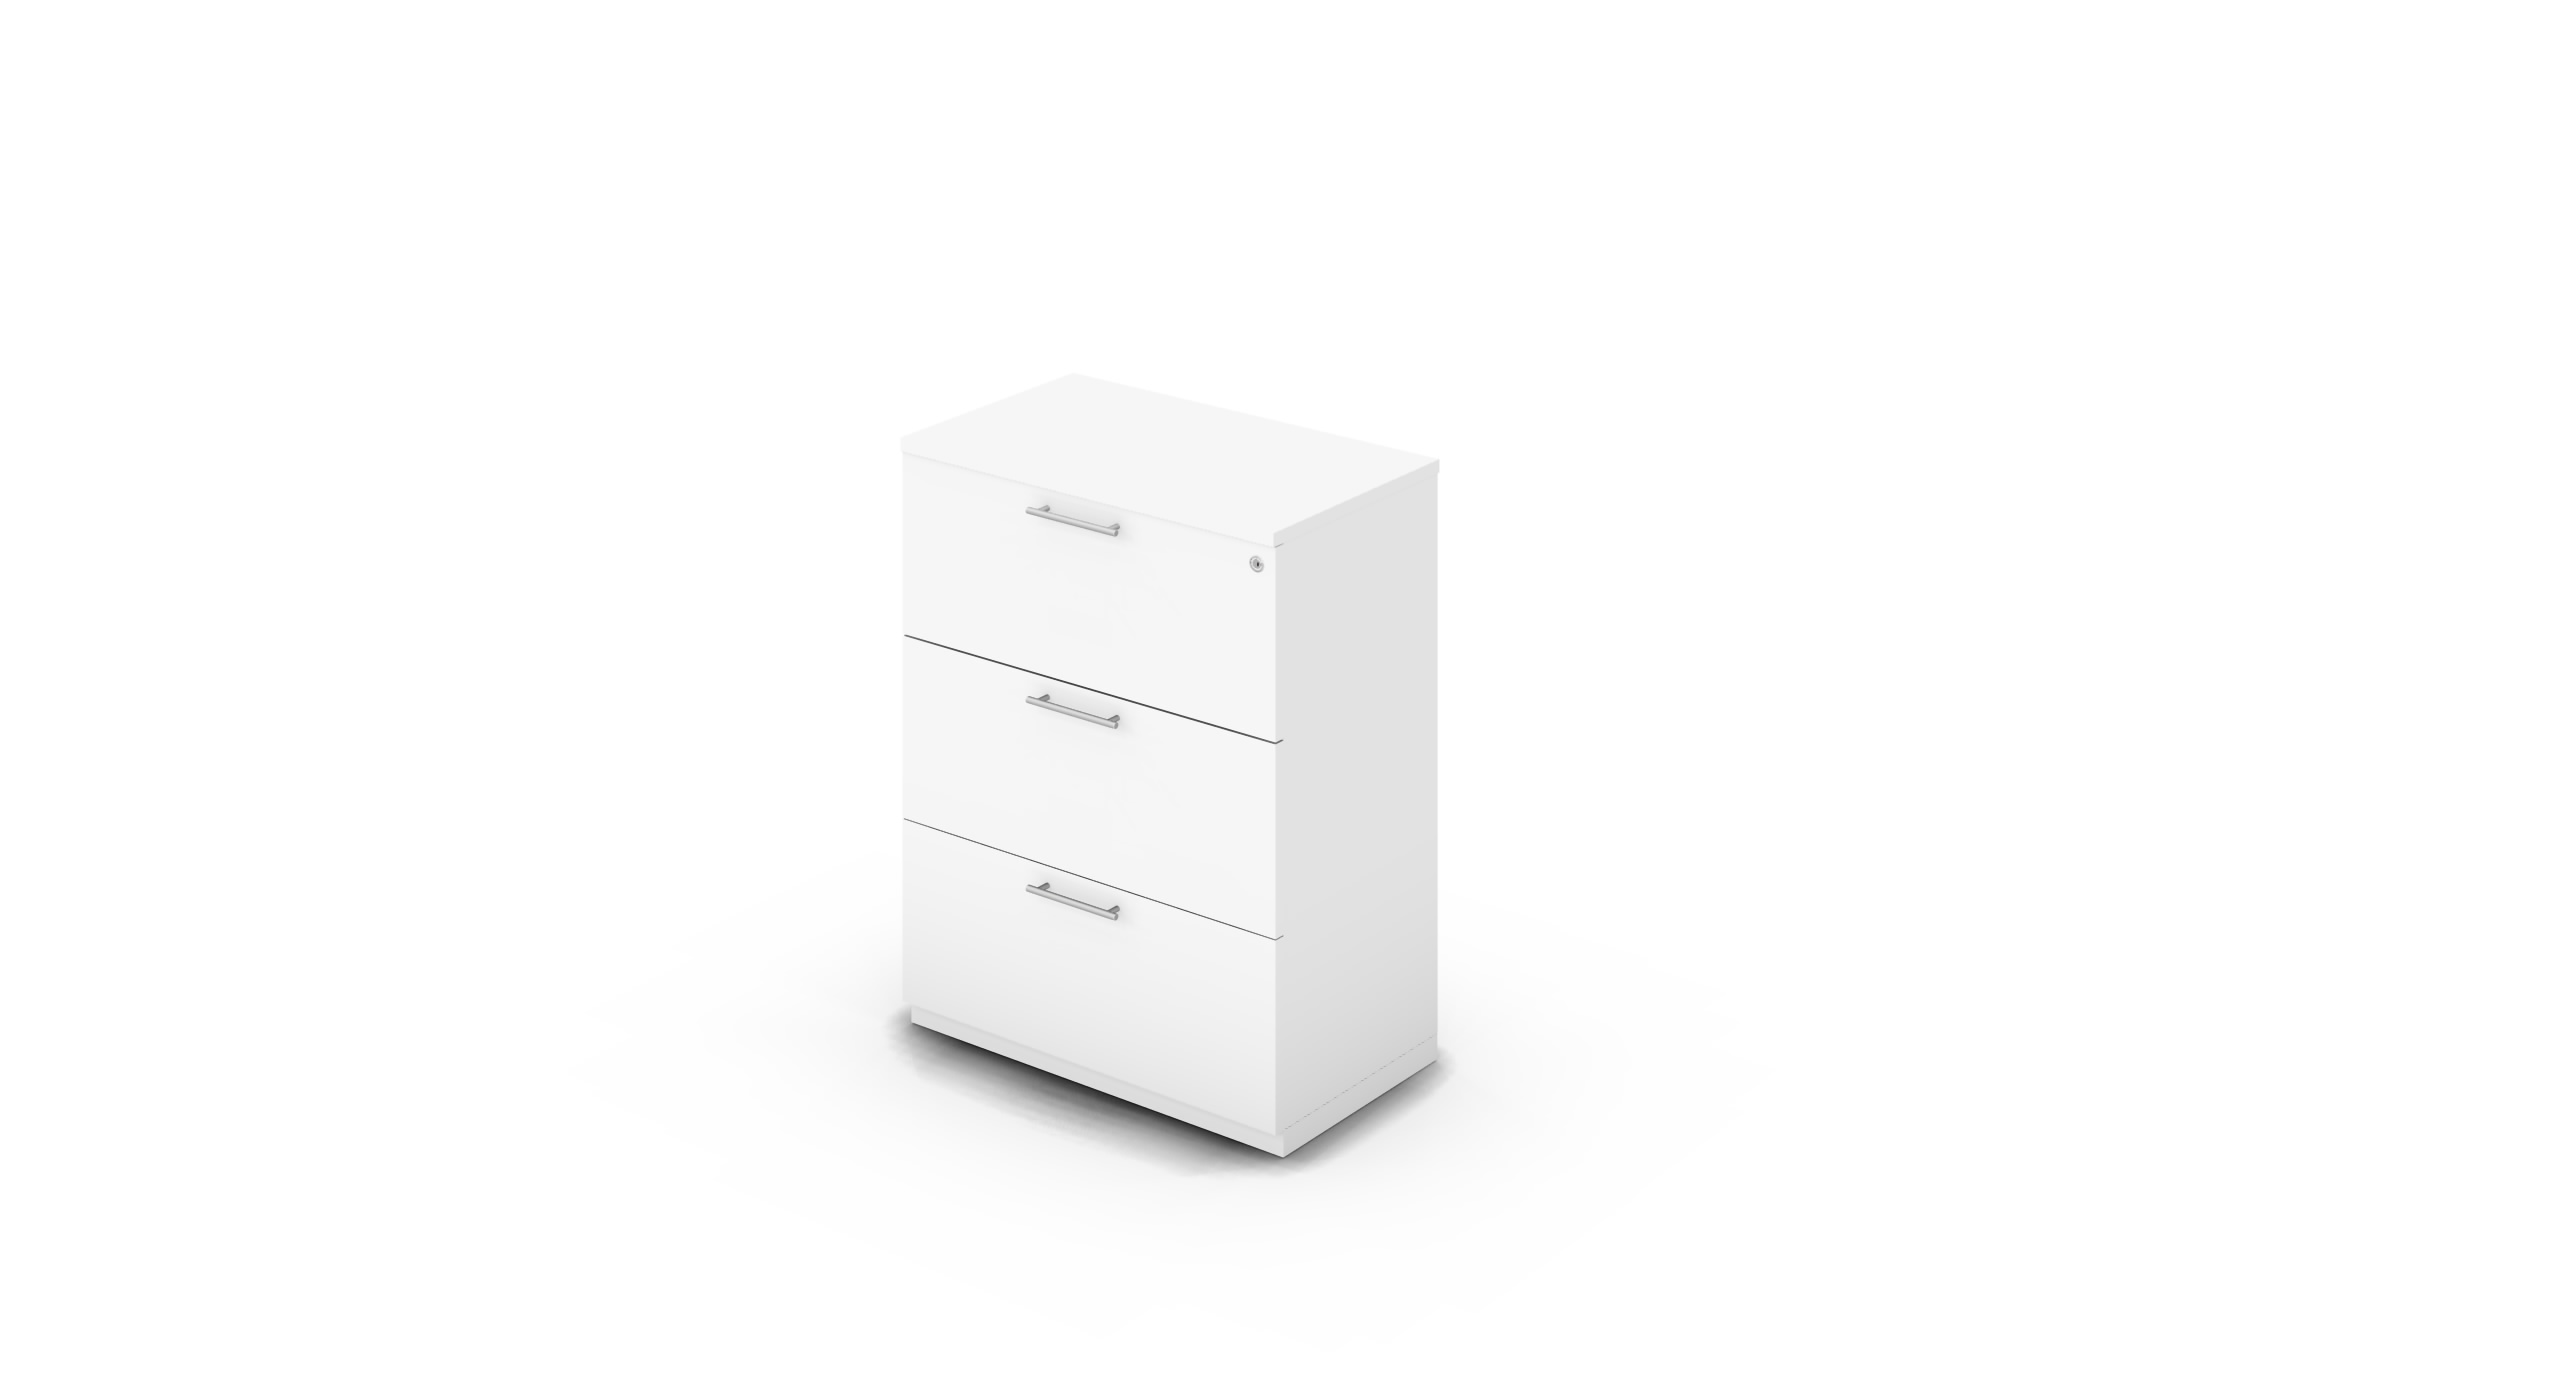 Cabinet_800x450x1125_DR_White_Bar_Round_WithCylinder